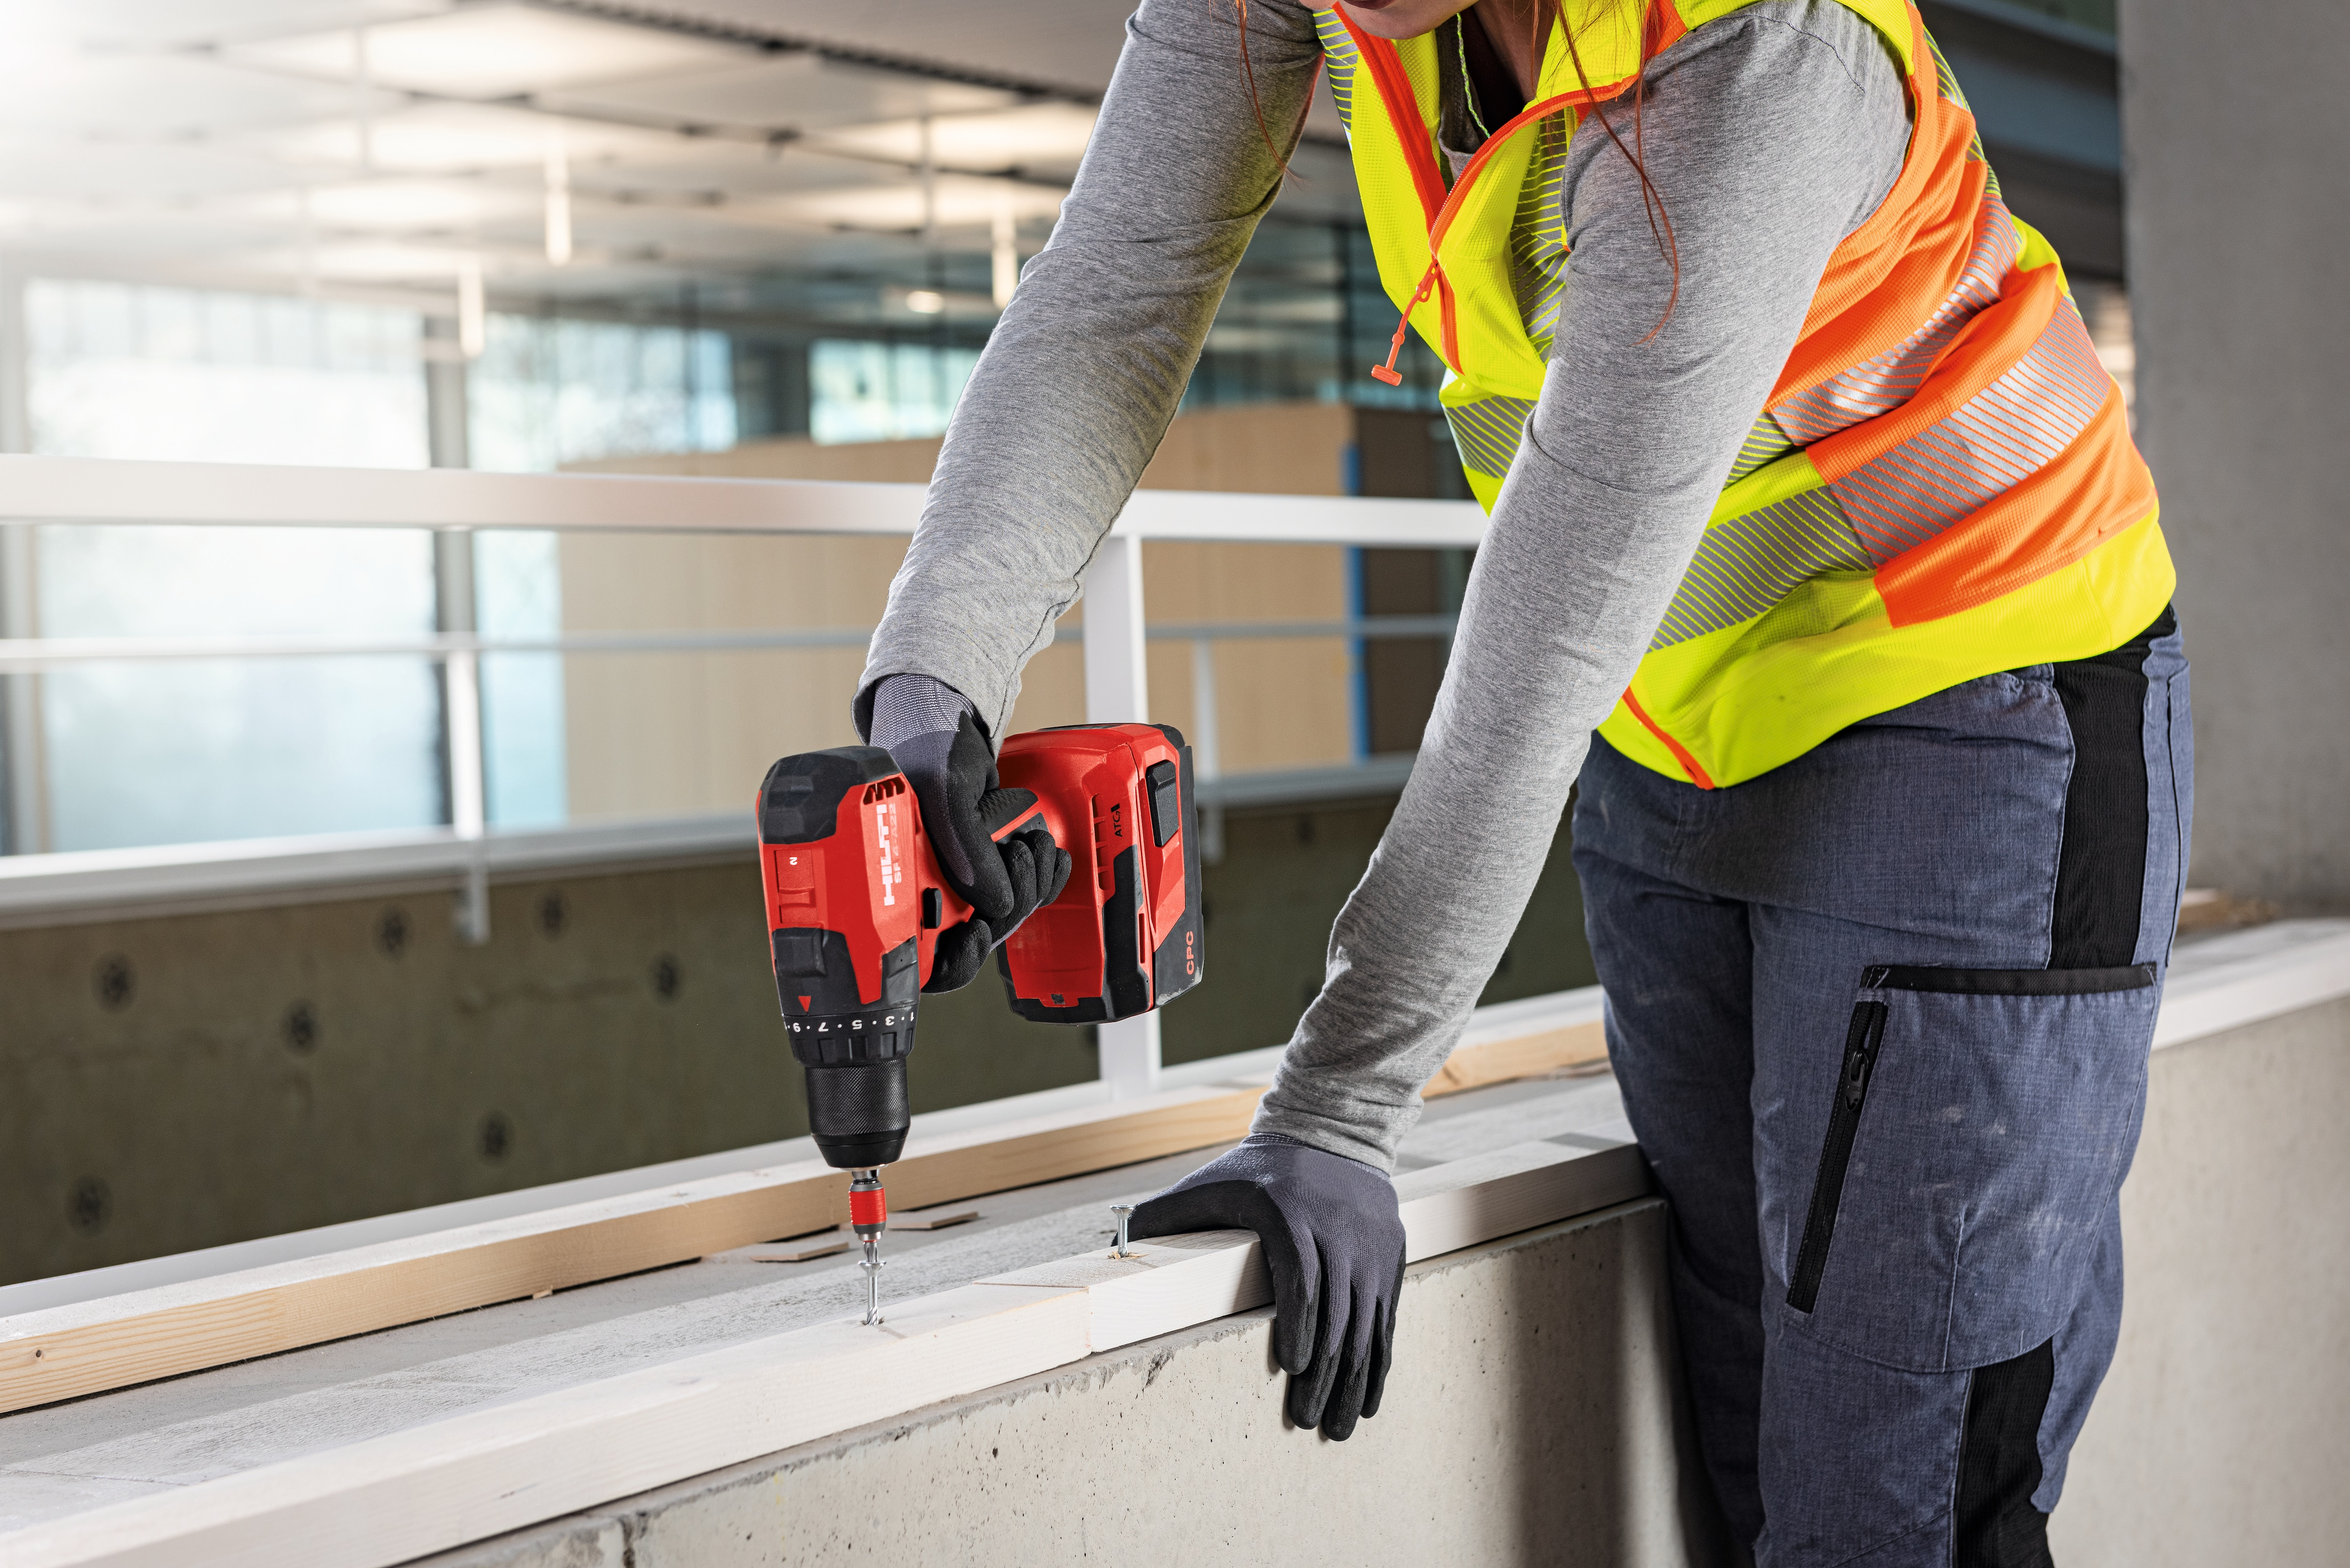 Video INTRODUCING Hilti SF 4-A22 Cordless Drill Driver